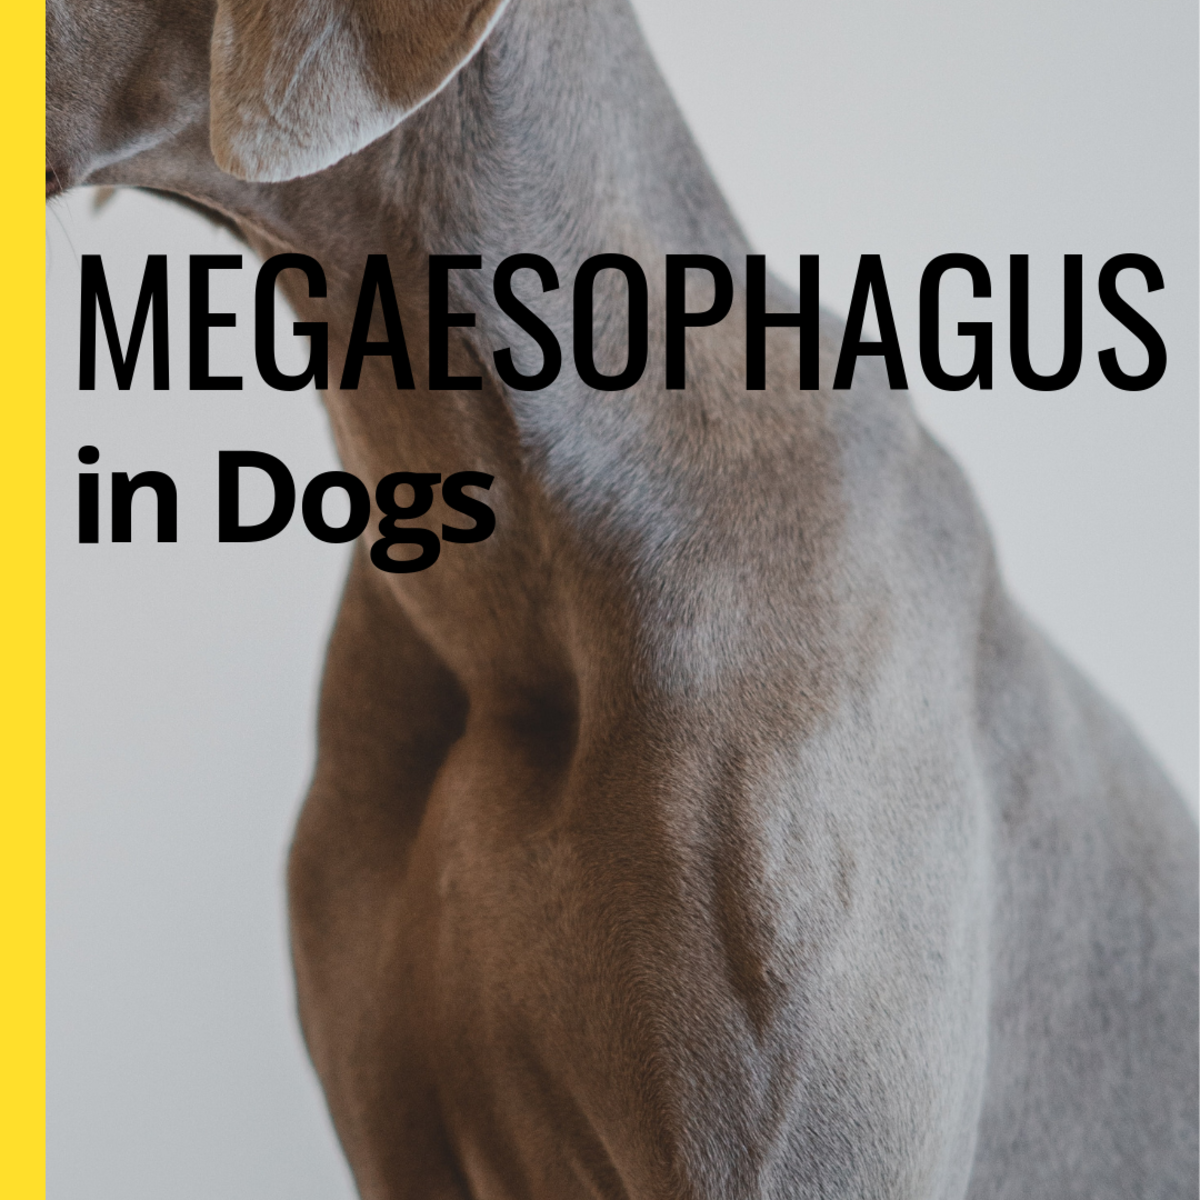 Managing Megaesophagus in Dogs